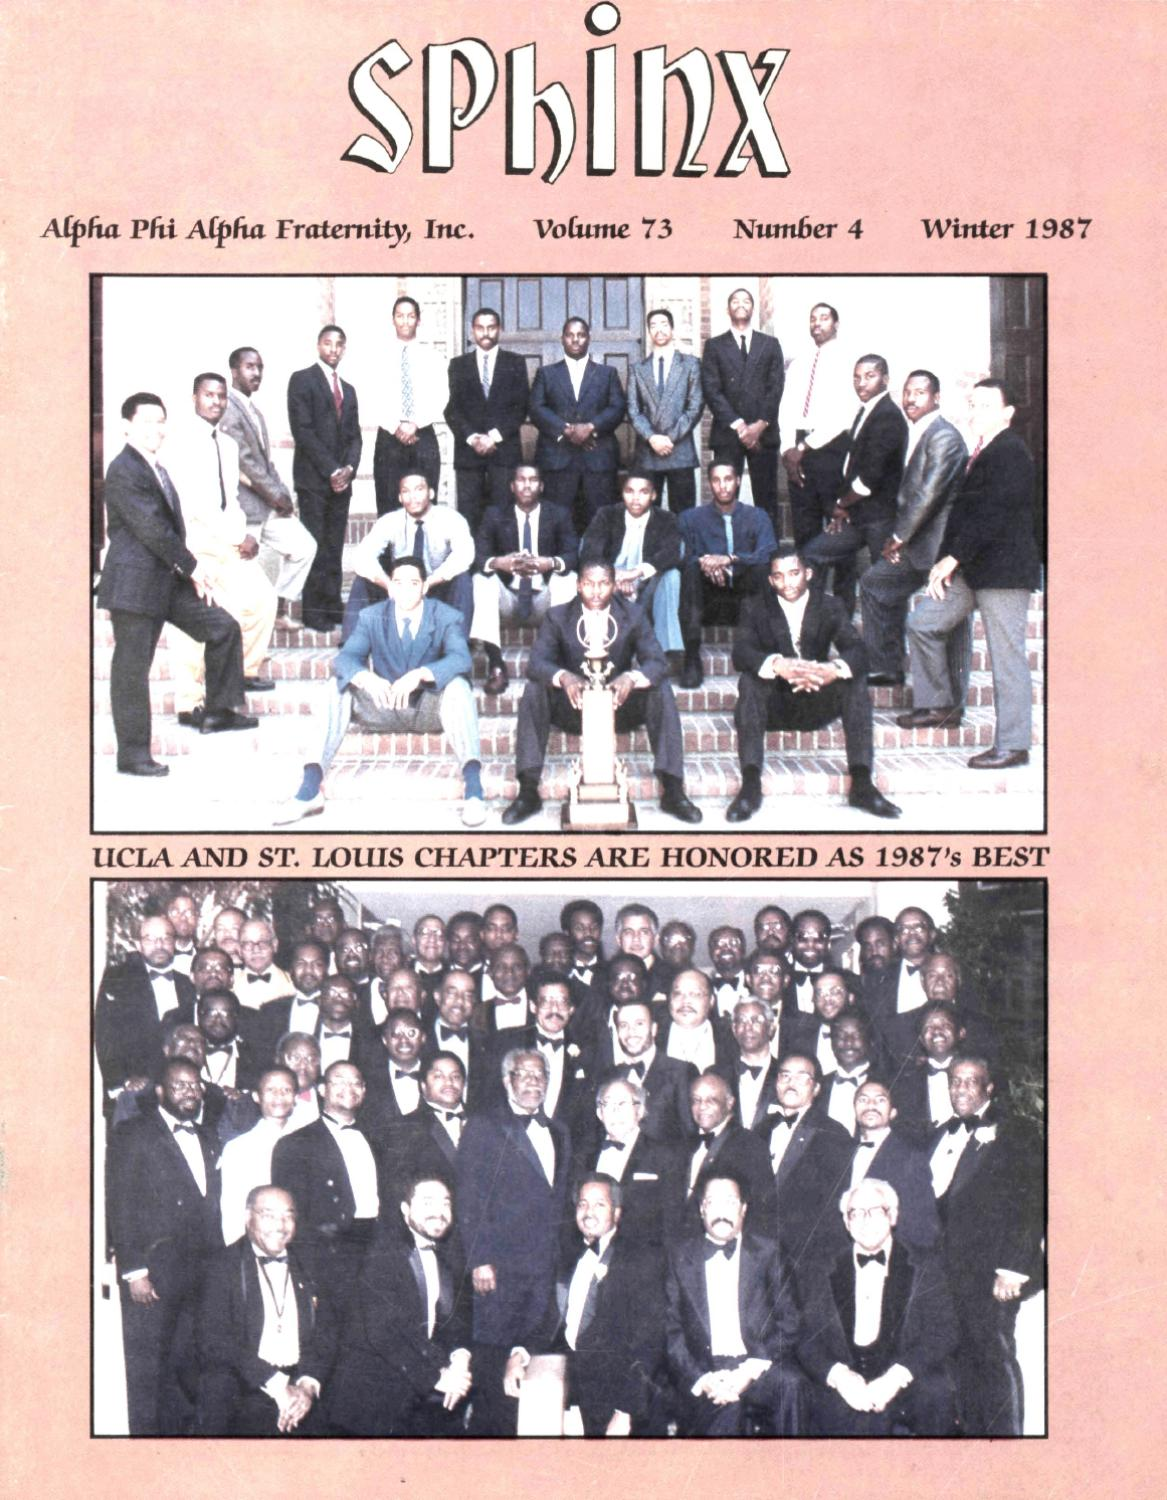 1bb9b61bdb1 The SPHINX | Winter 1987 | Volume 73 | Number 4 198707304 by Alpha Phi Alpha  Fraternity - issuu